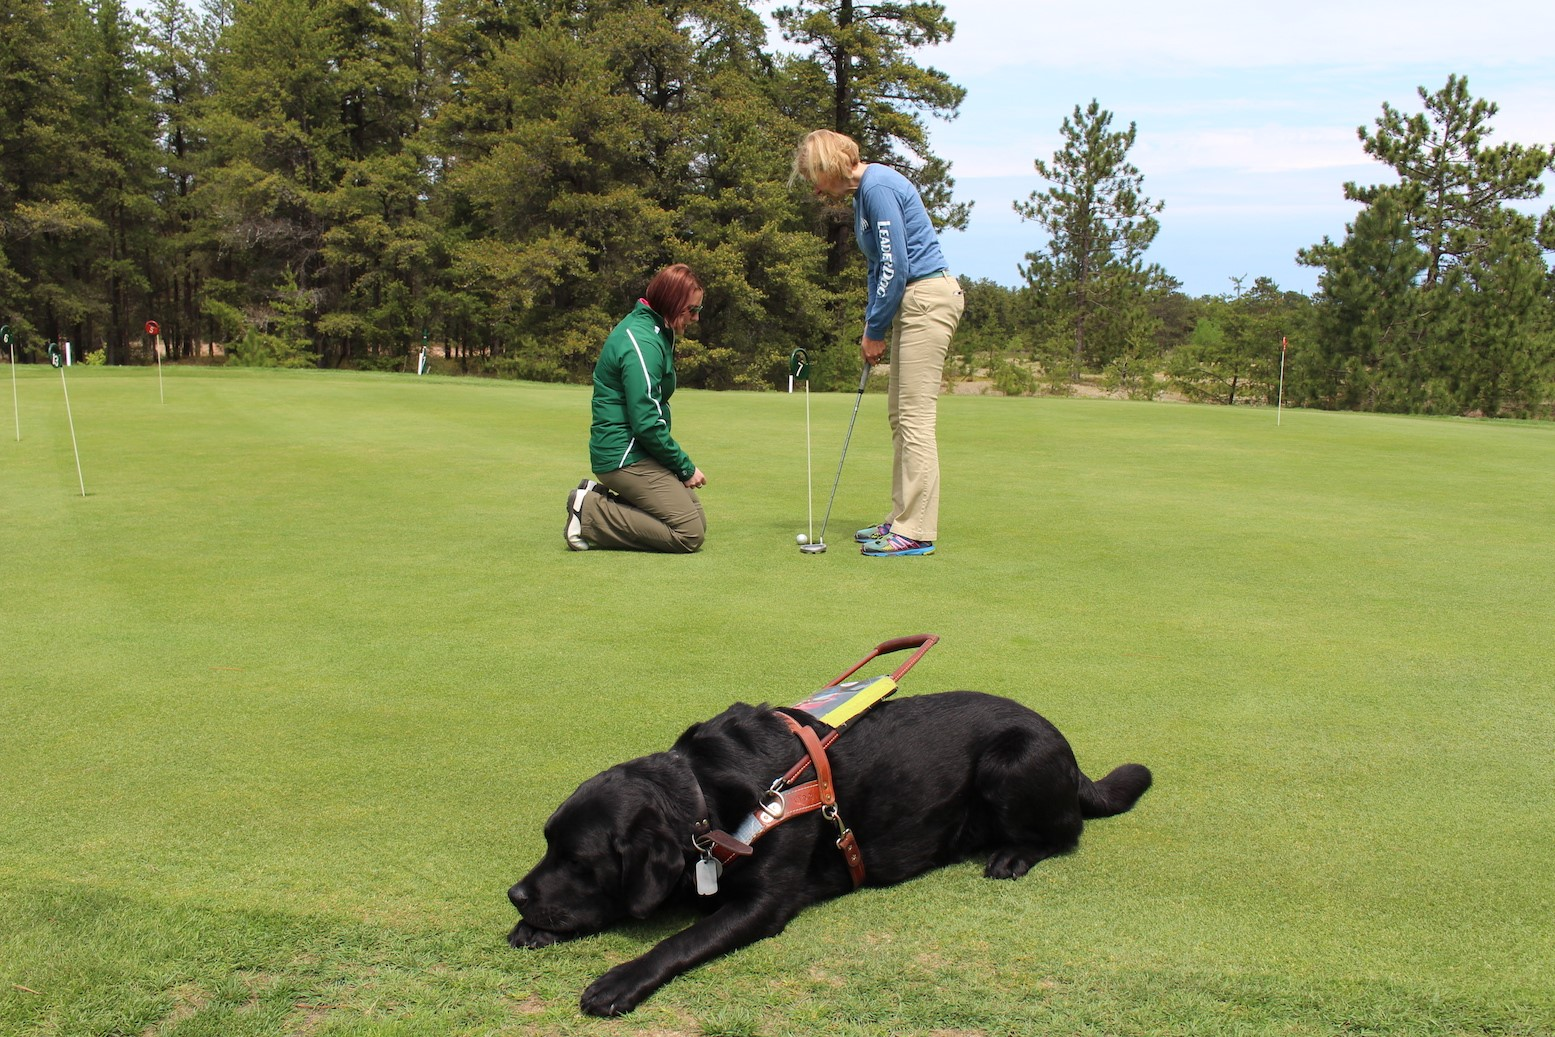 Preston golfing while her Leader dog Floyd enjoys a rest.